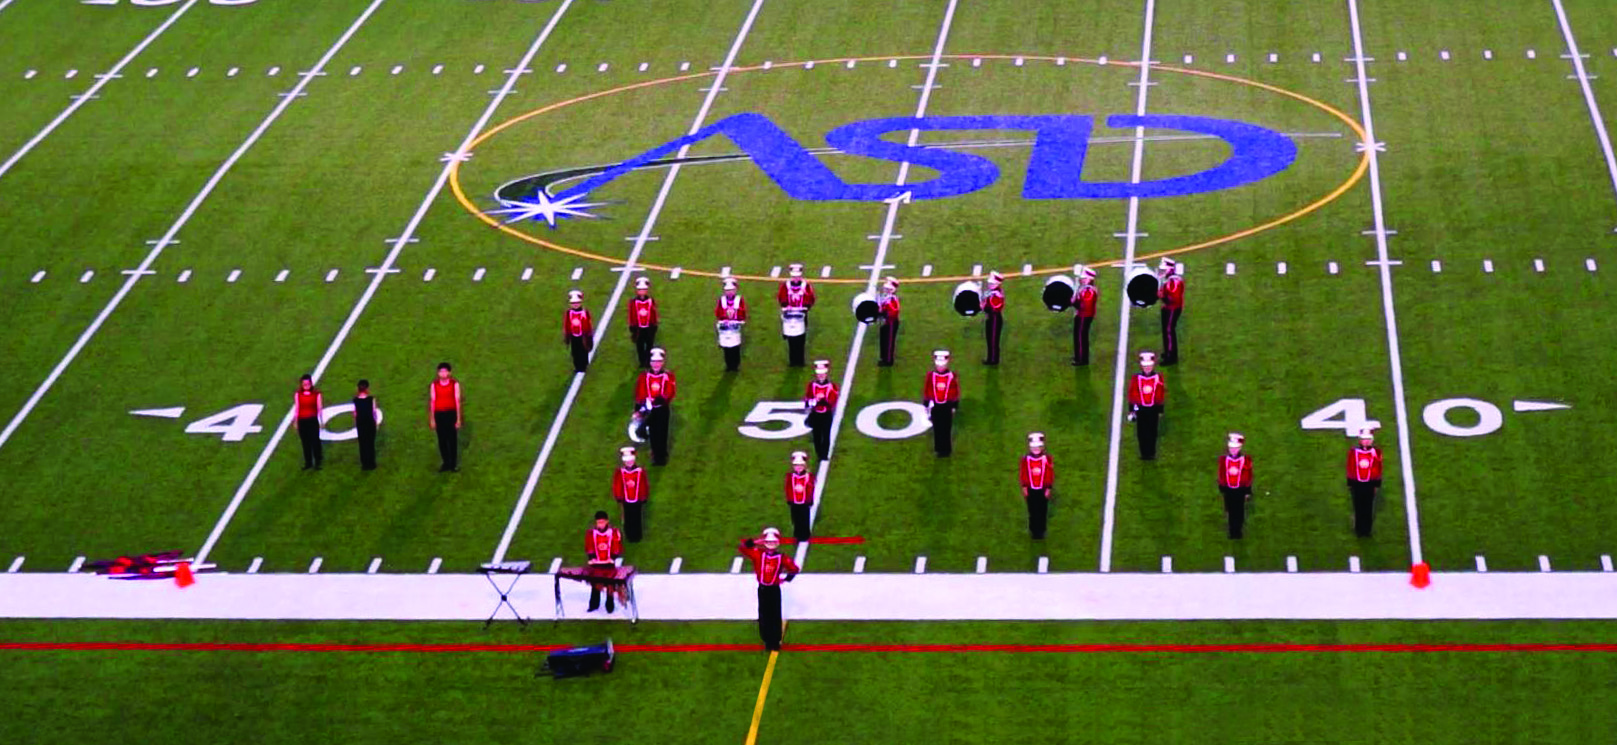 On the field at DCI East in Allentown, PA